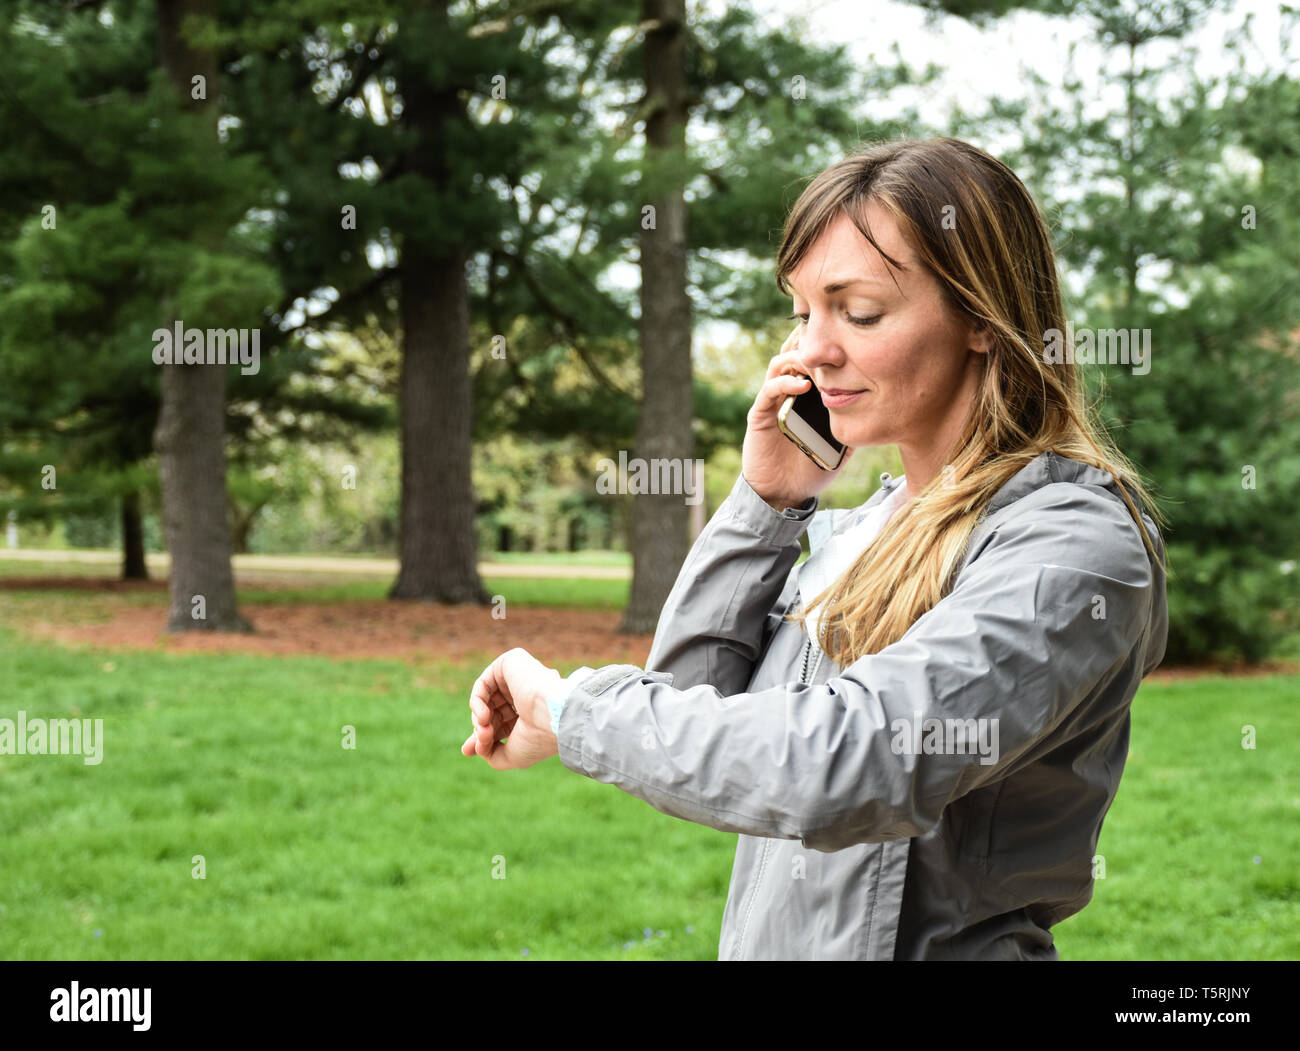 Young woman on cell, mobile phone looking at watch in city park on overcast day, smiling, with green grass, trees background - Stock Image